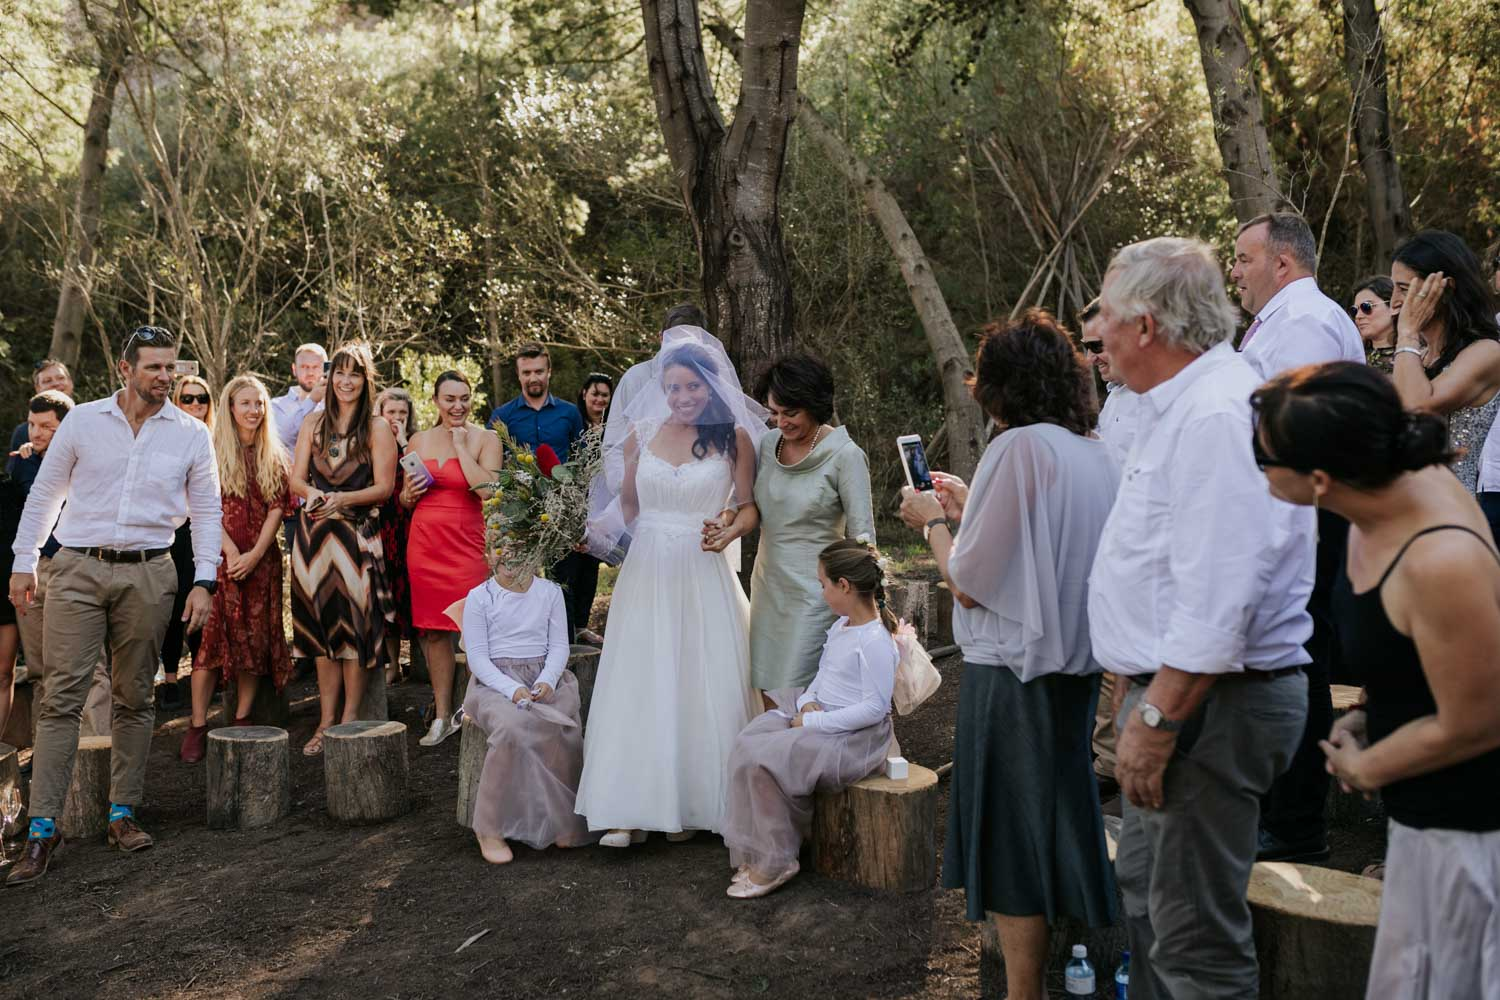 Bride's mother walks her down the aisle in a forest with guests sitting on tree stumps towards her soon to be husband.